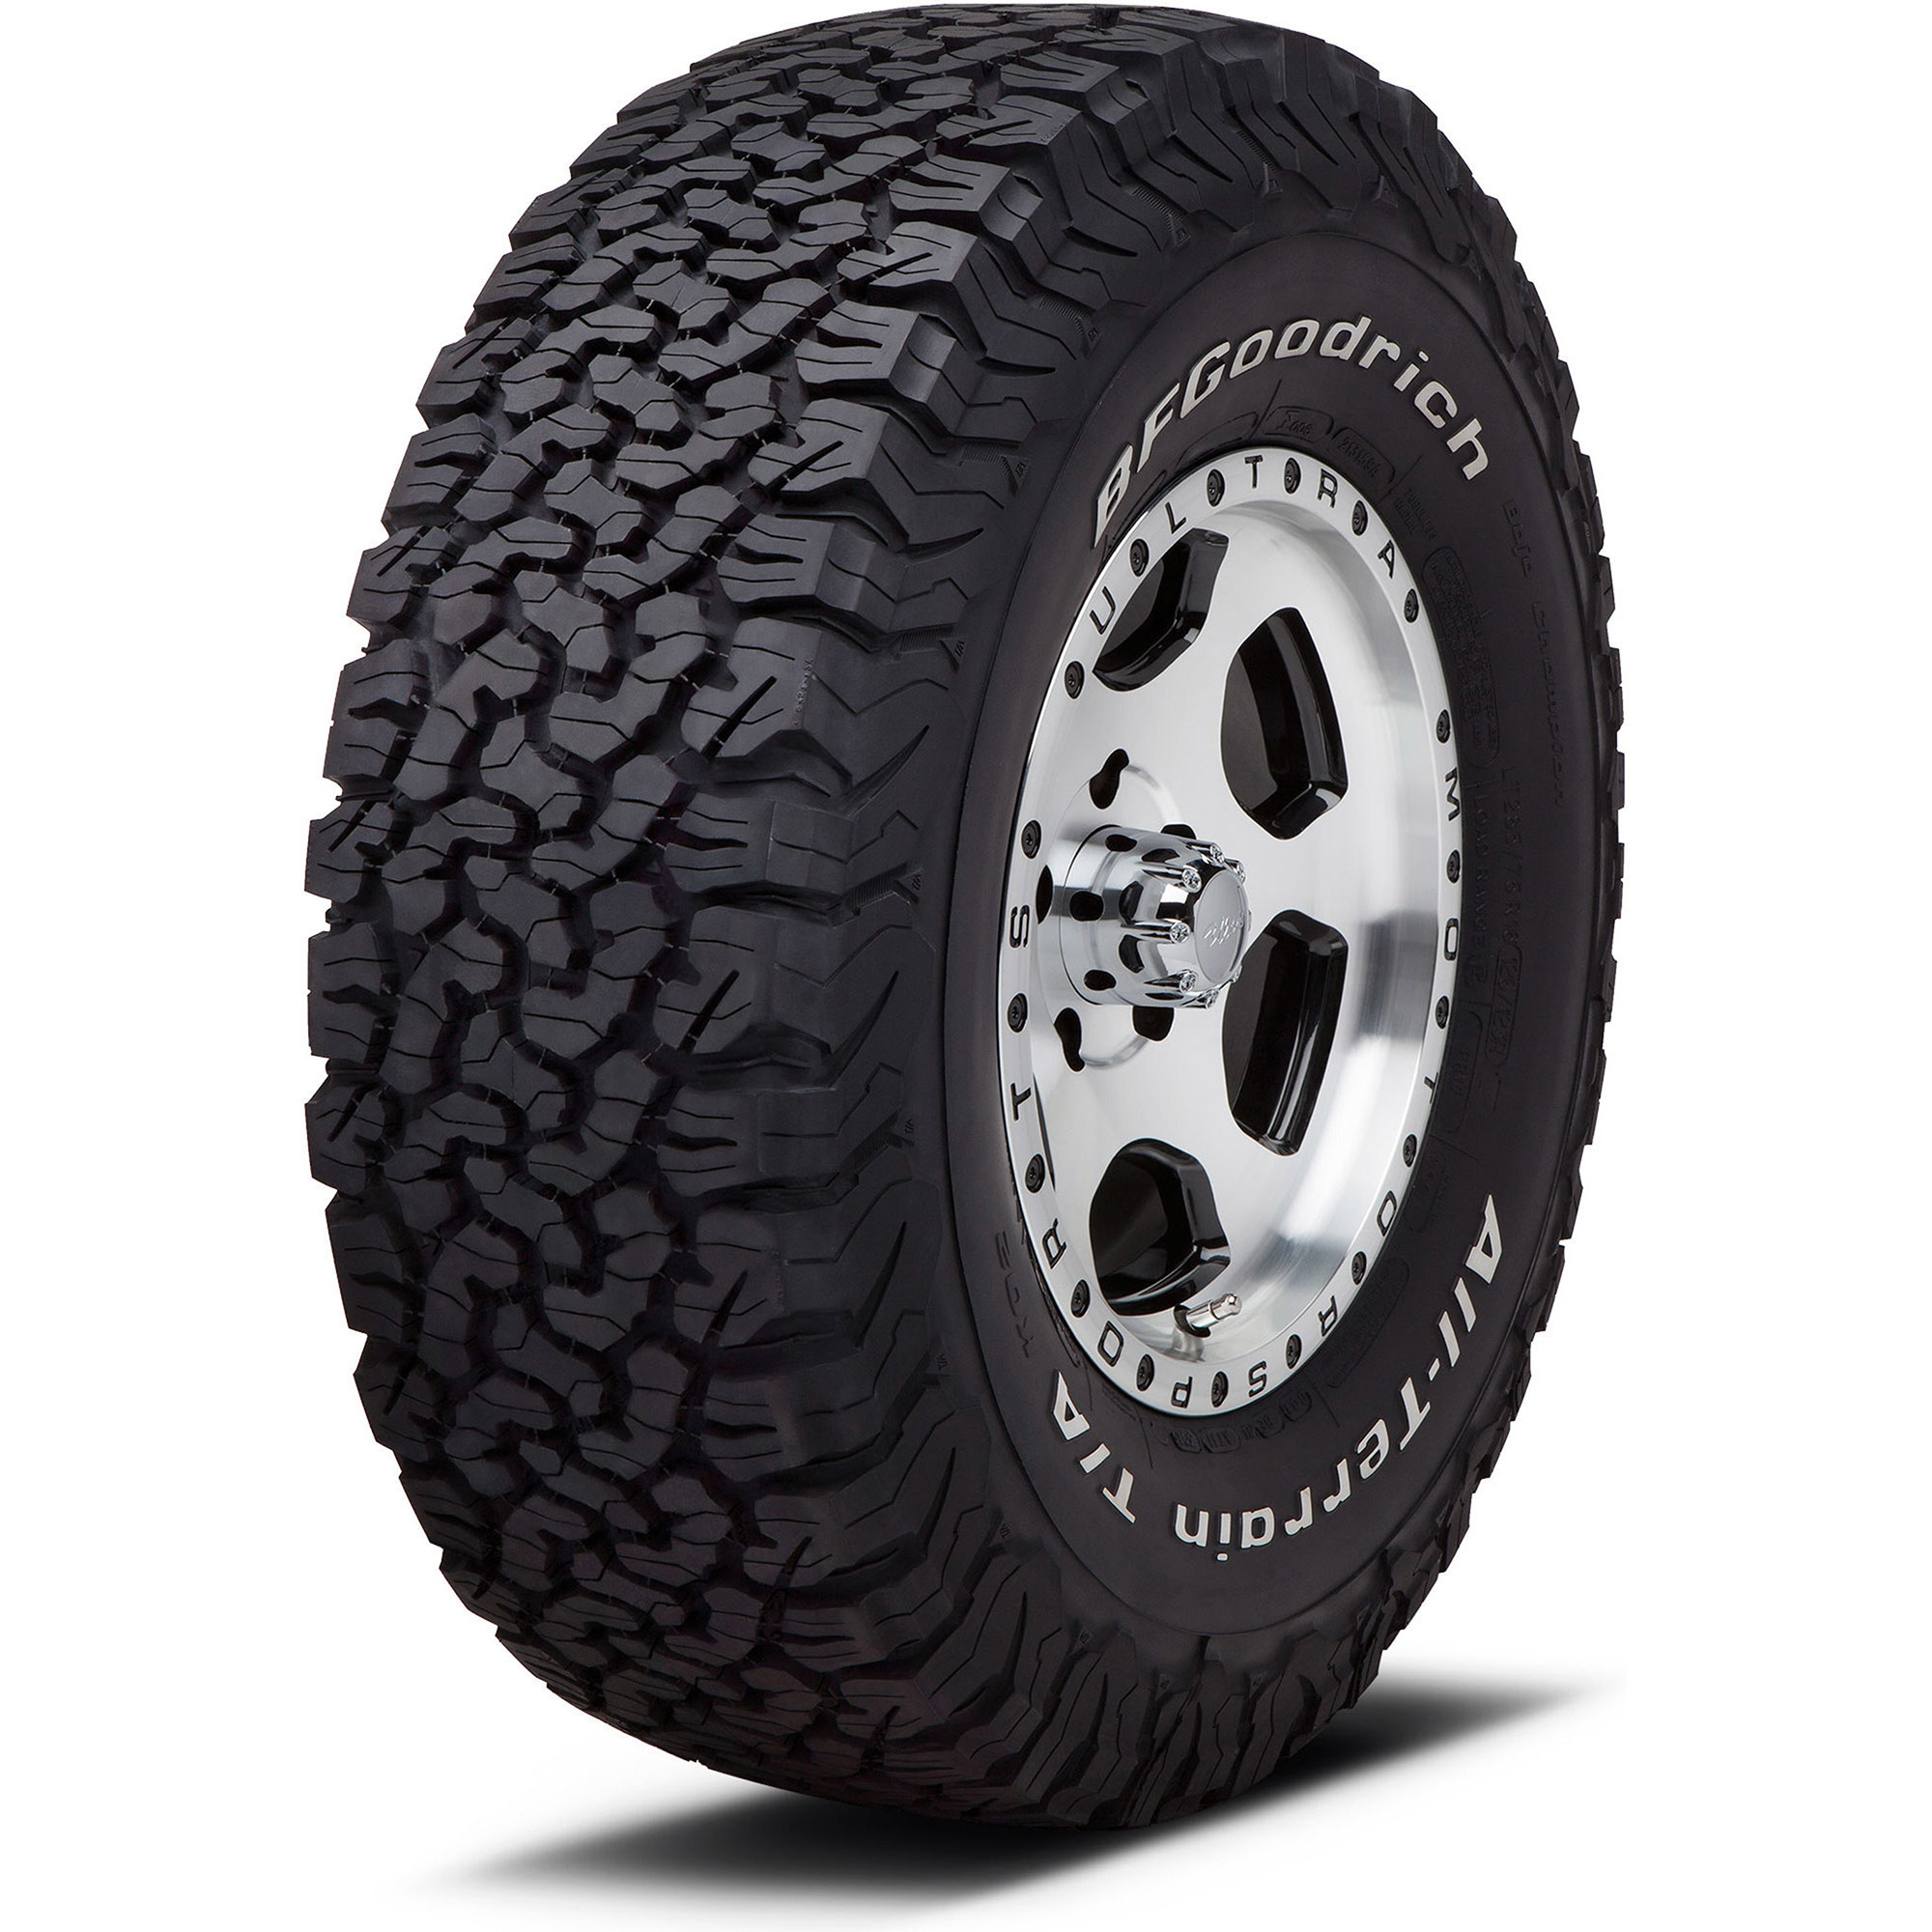 летние шины BF Goodrich All Terrain TA KO2 215/75 R15 100/97/S